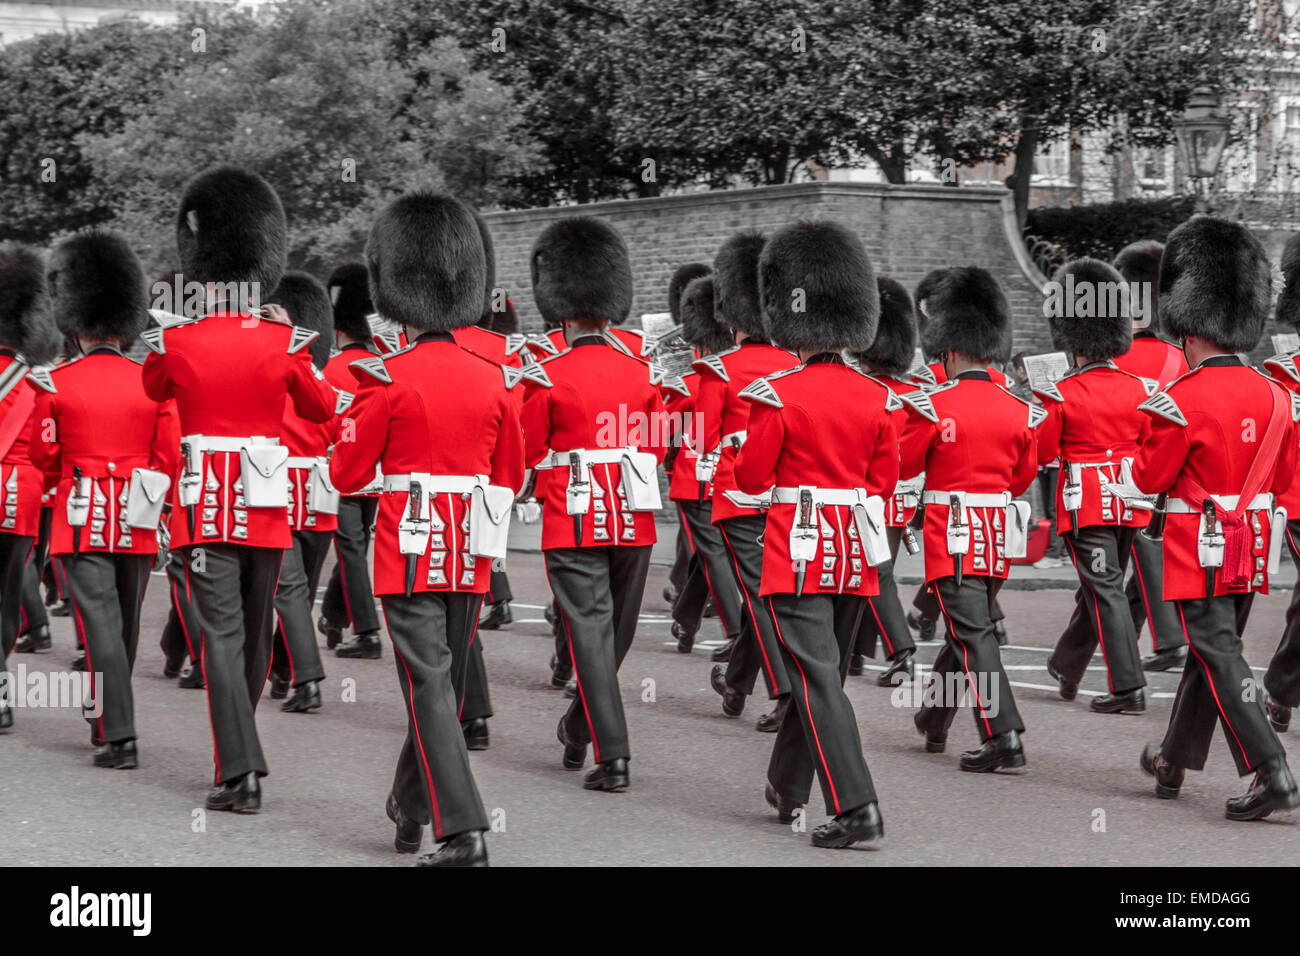 An image of The Regimental Band of the Coldstream Guards marching toward St James's Palace, London, England - Stock Image